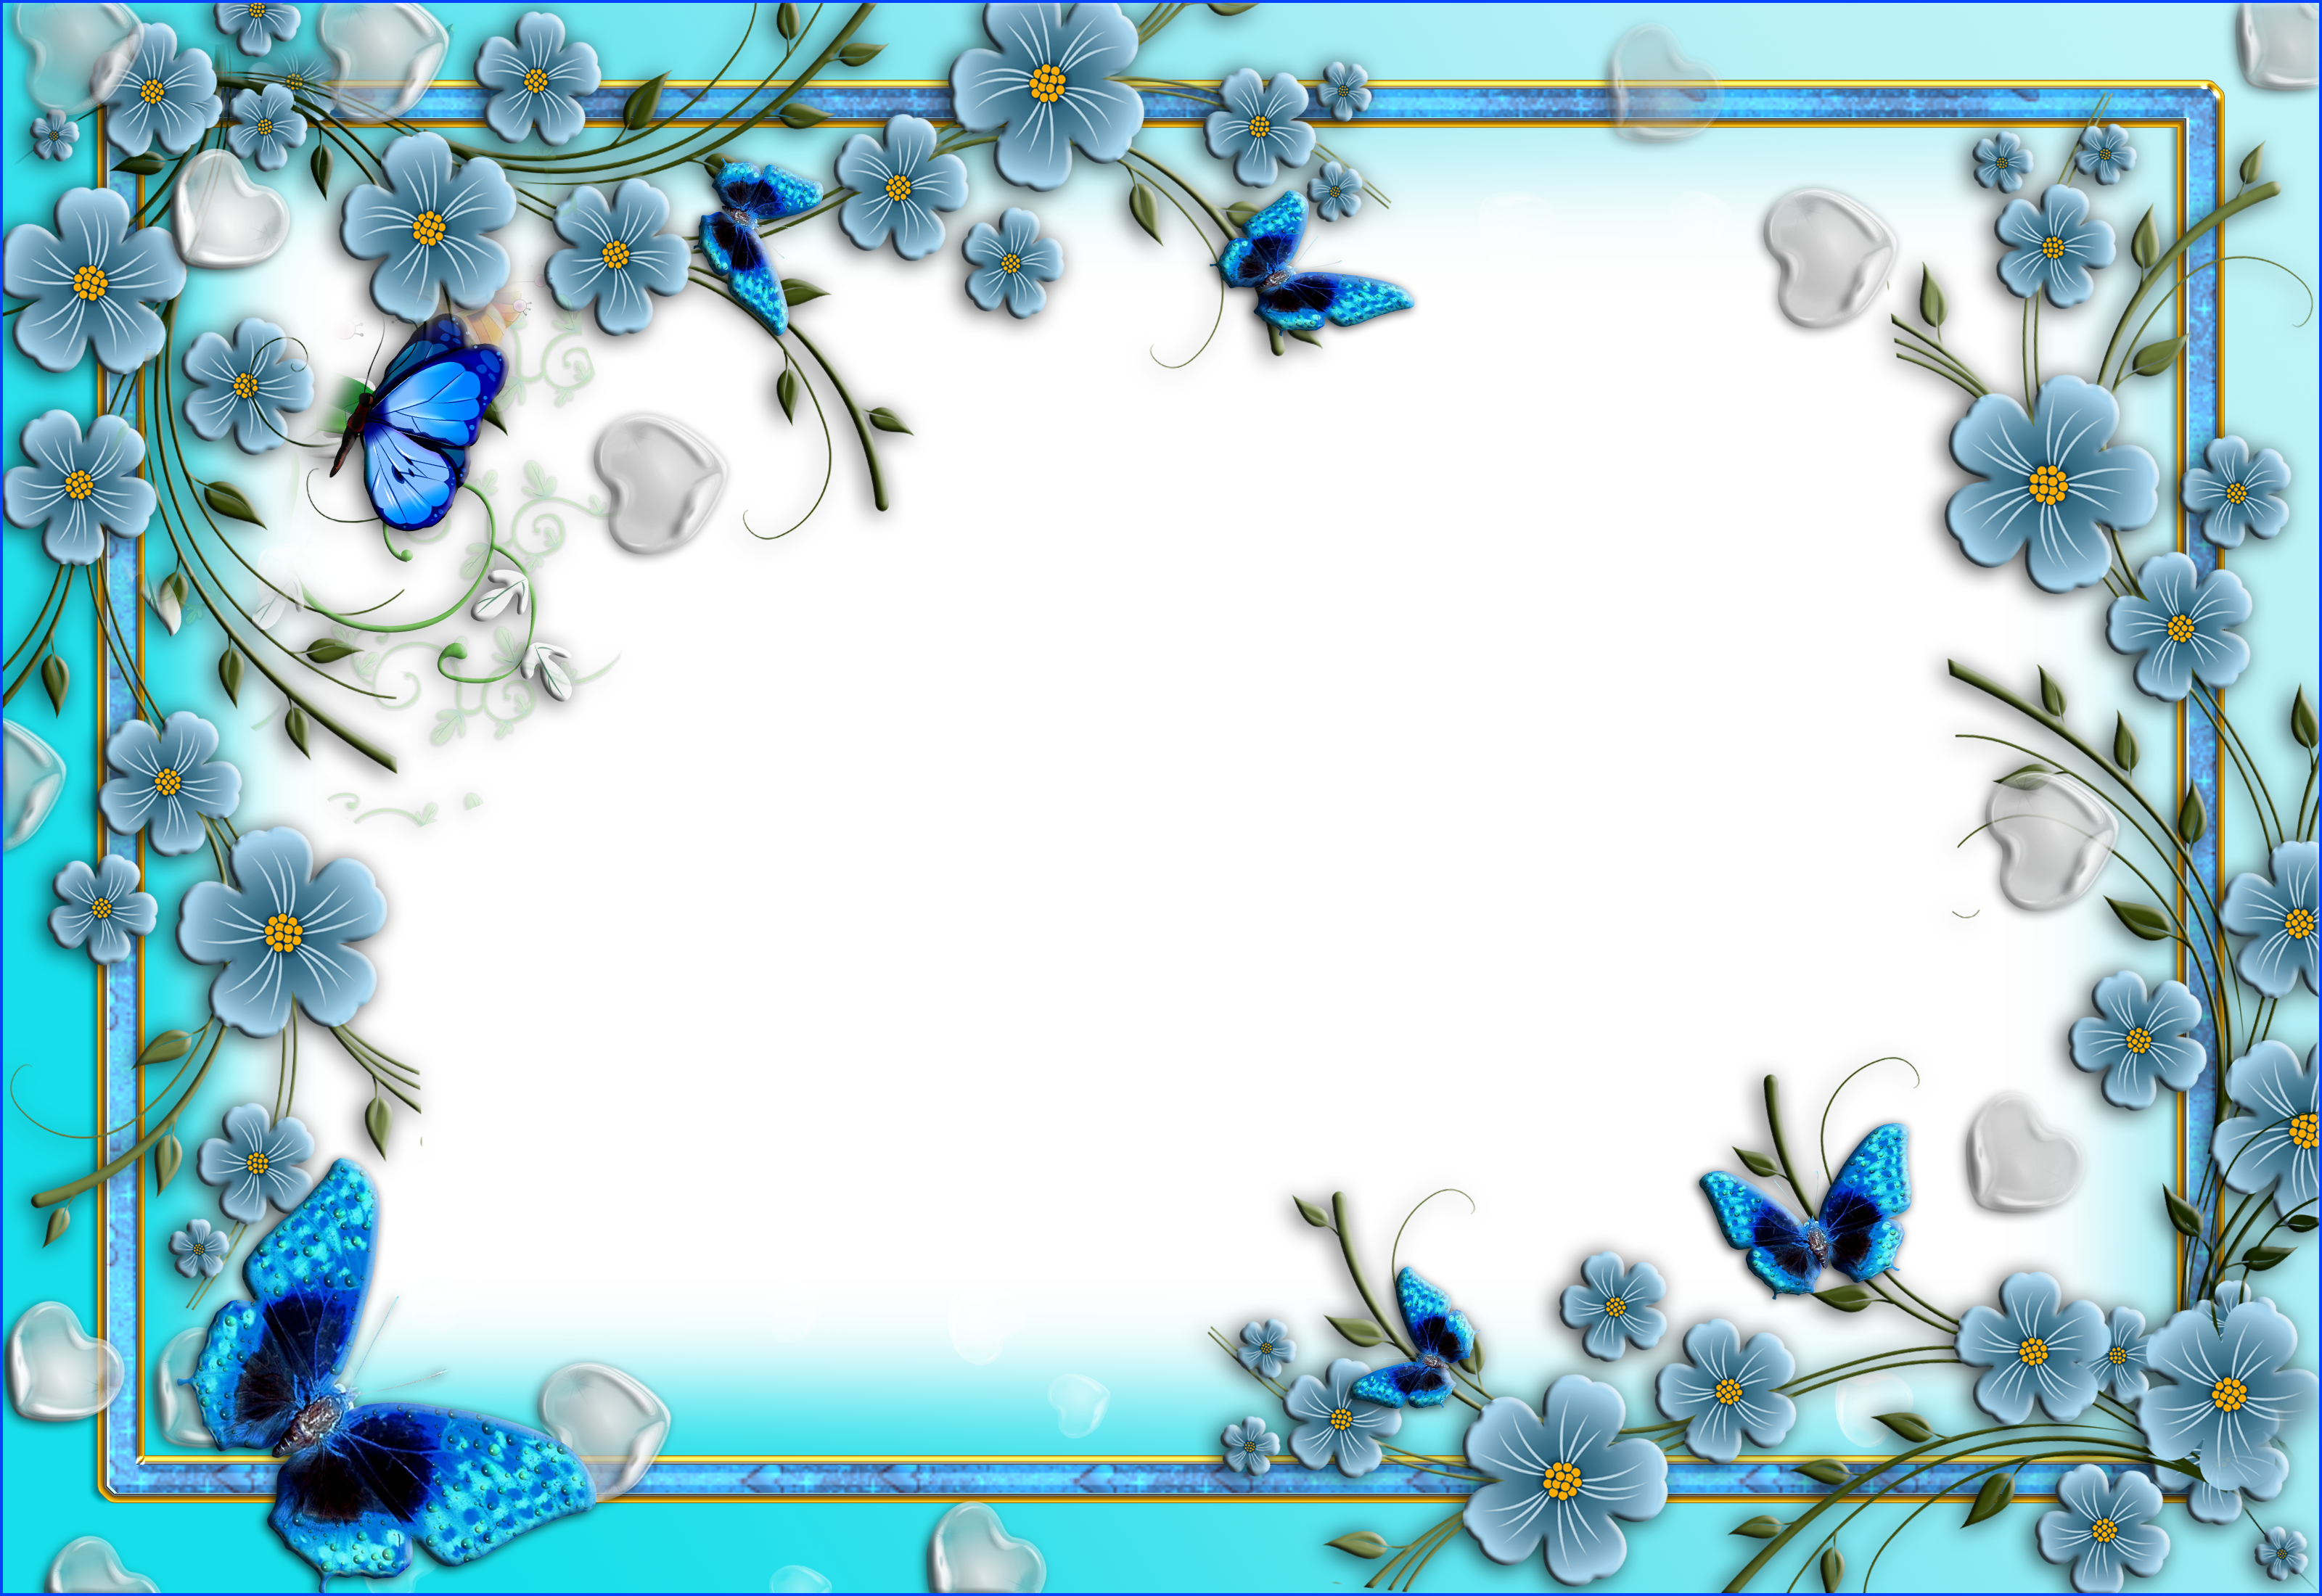 Png Fantasy Yahoo Image Search Results Flower Frame Printable Frames Butterfly Frame